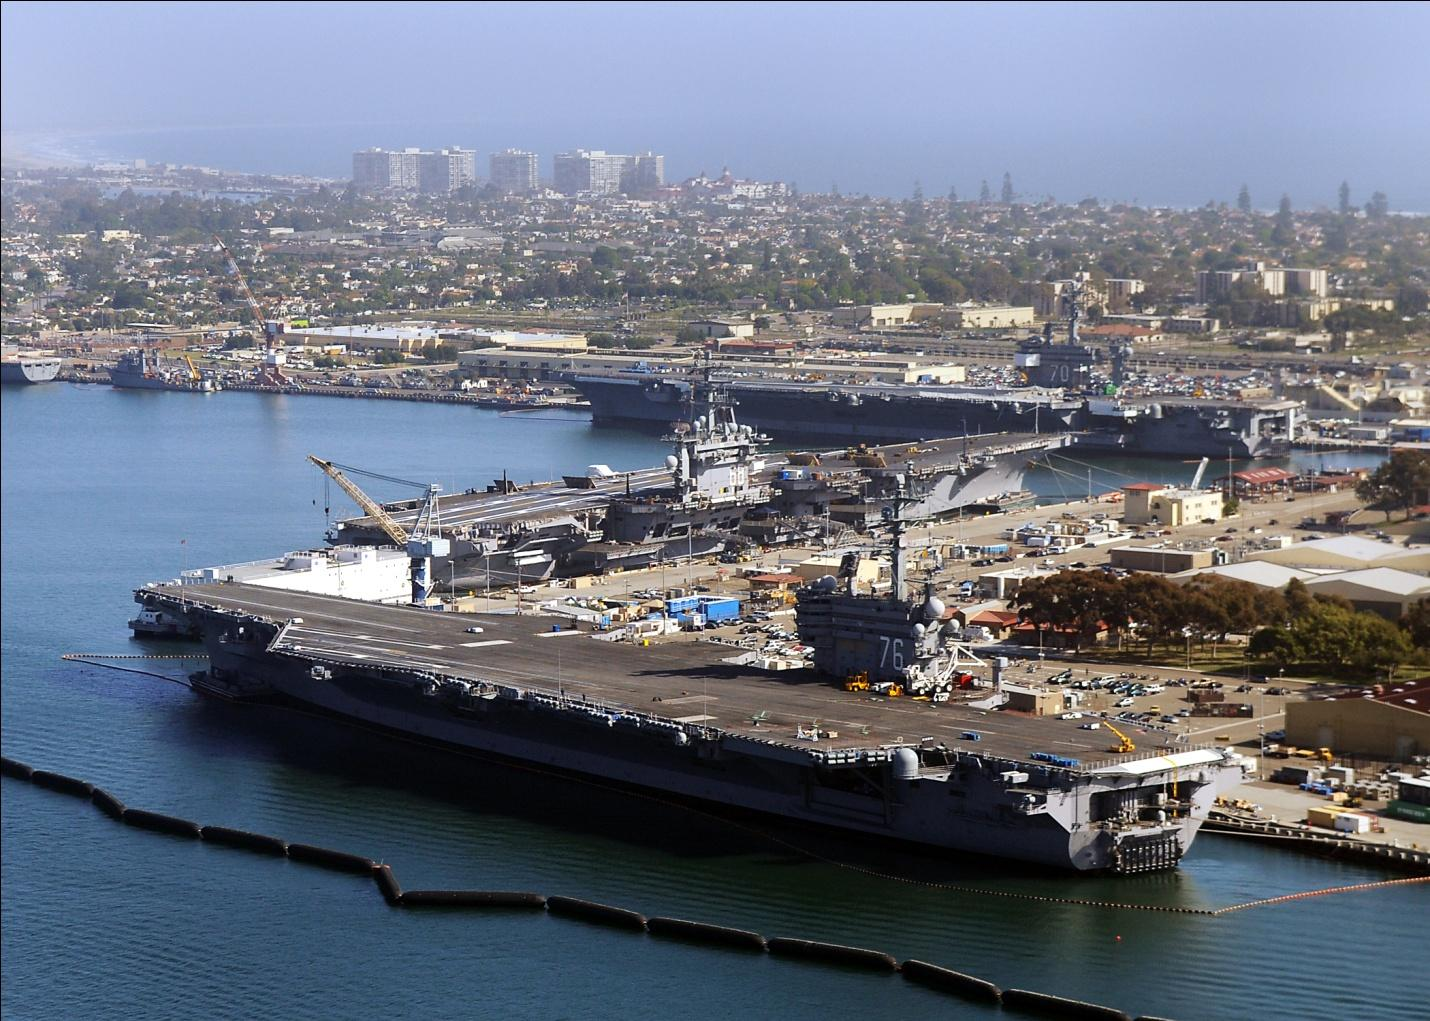 C:UsersCoeffDesktopArmy Base PicsNorth Island Naval Complex Navy Base in San Diego, CAUS_Navy_100506-N-8421M-124_The_aircraft_carriers_USS_Ronald_Reagan_(CVN_76),_USS_Nimitz_(CVN_68)_and_USS_Carl_Vinson_(CVN_70)_are_pierside_at_Naval_Air_.jpg